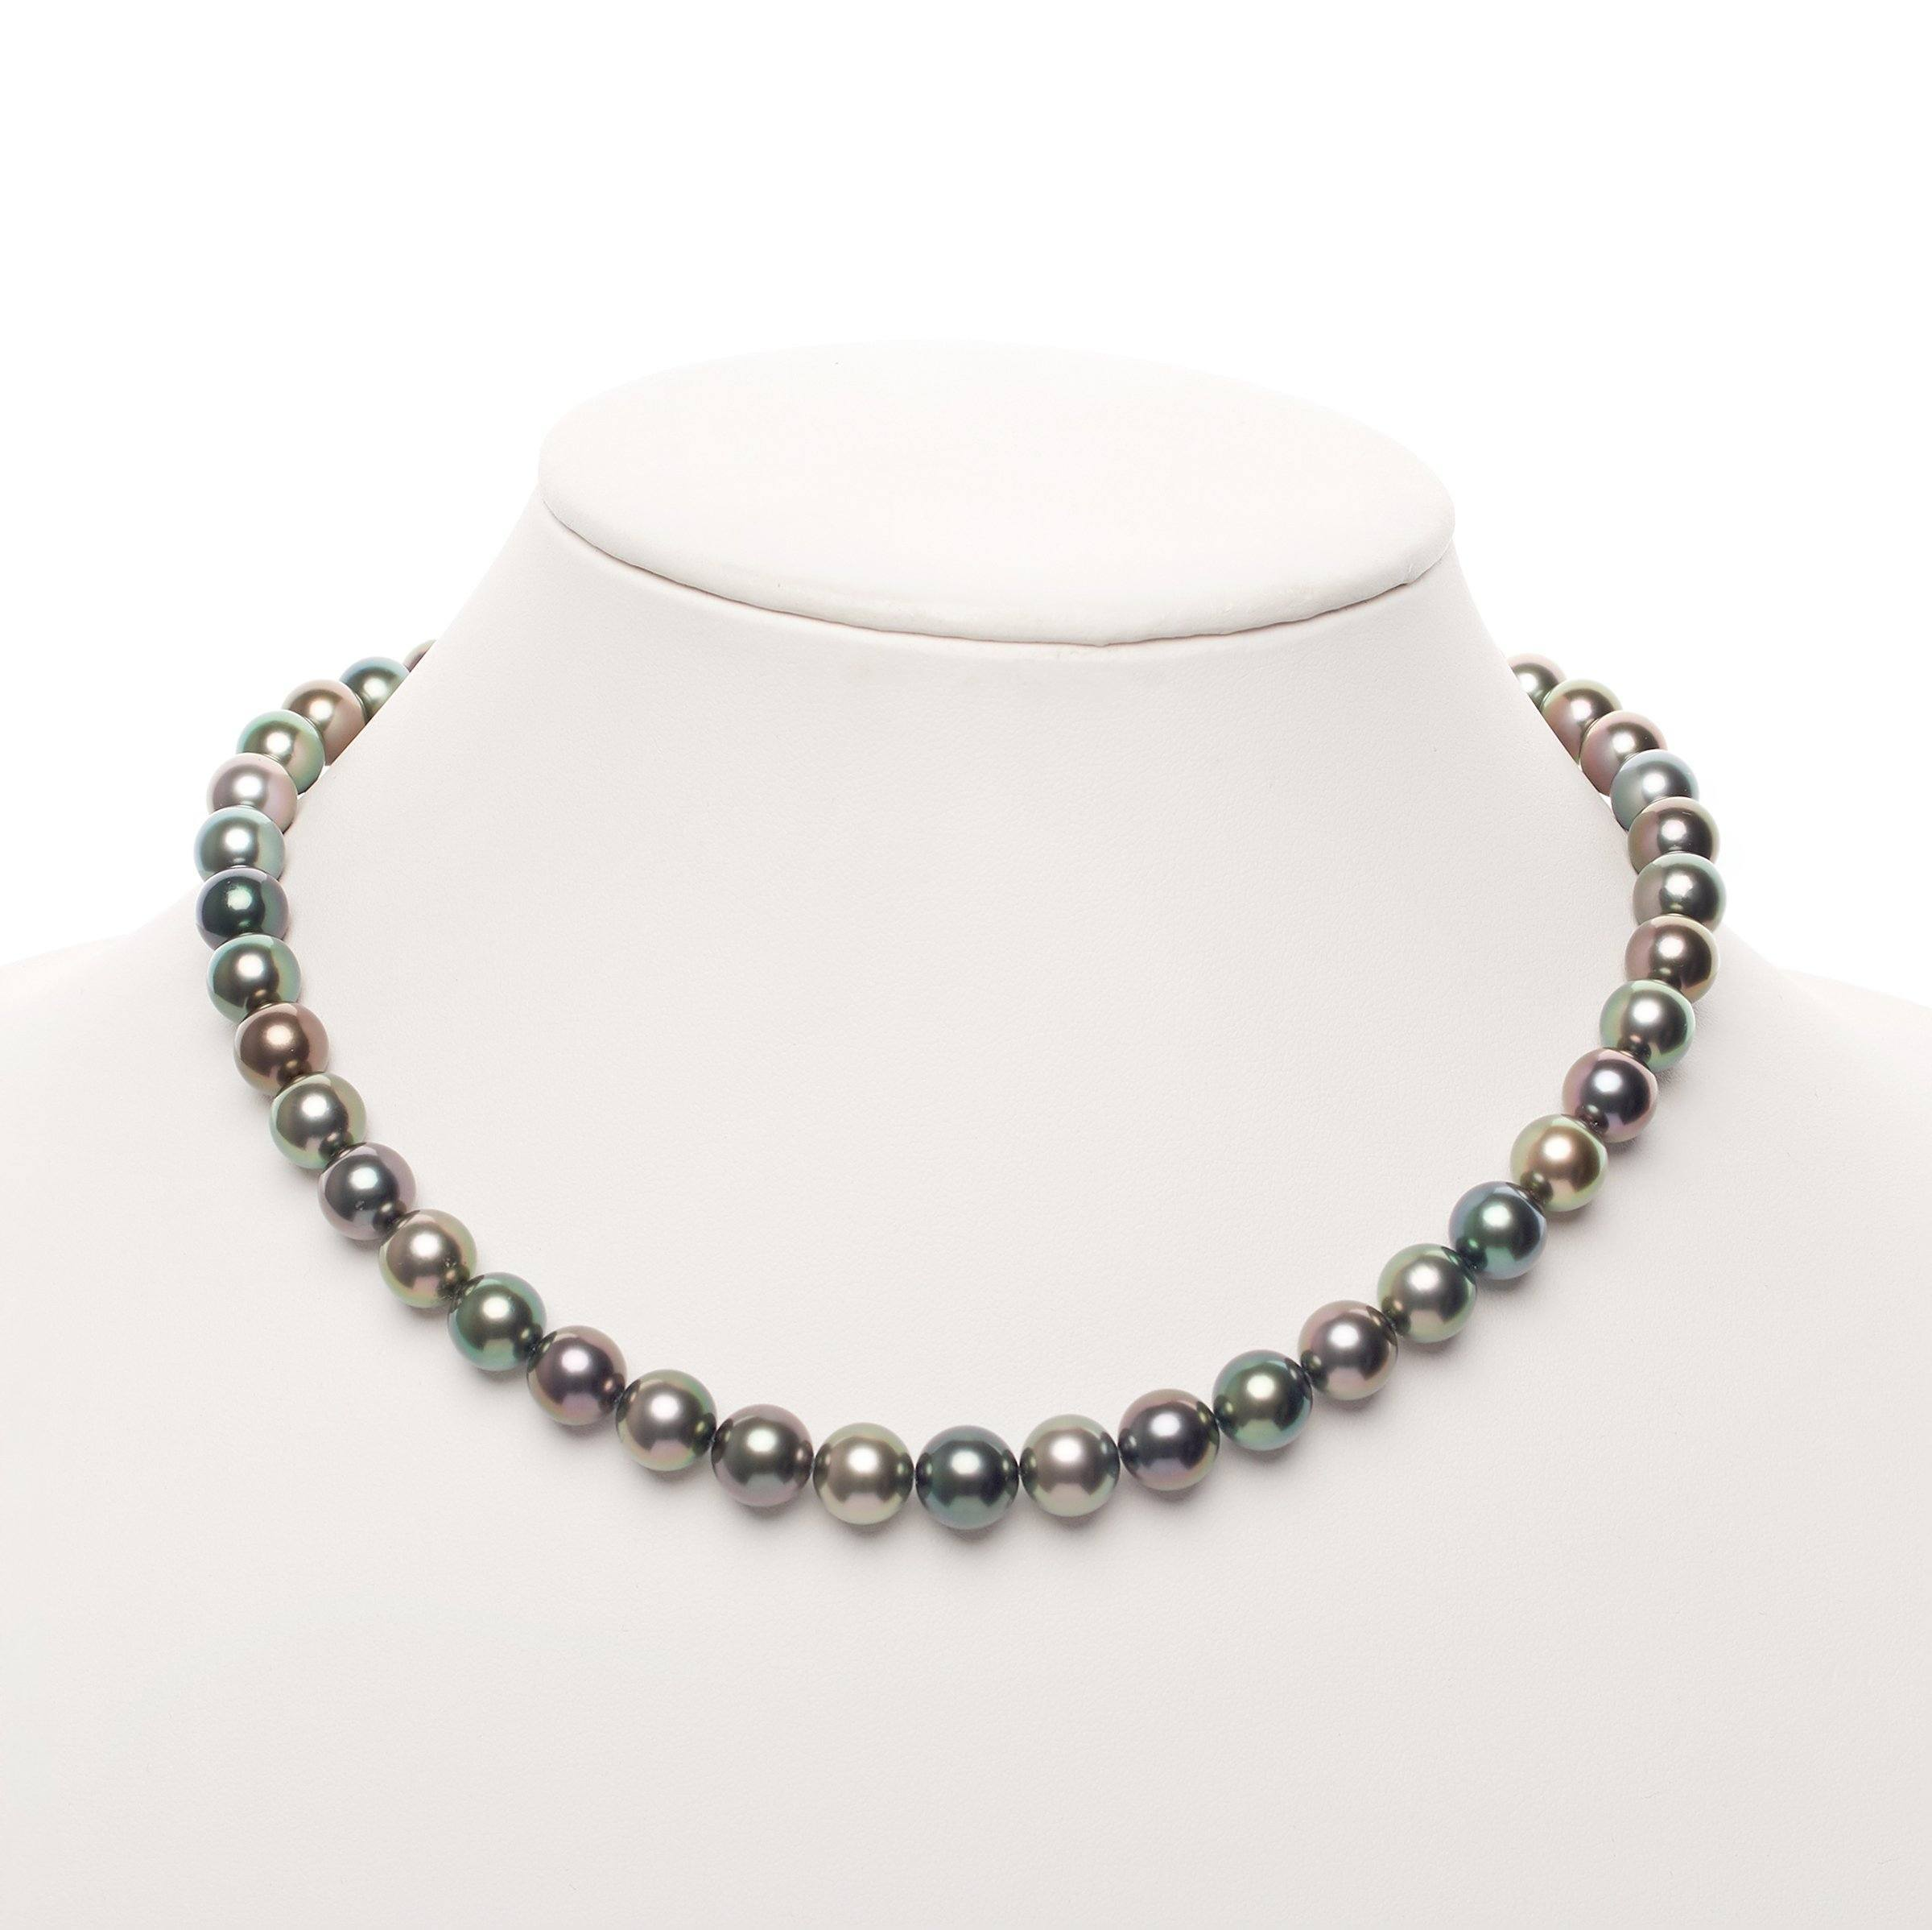 8.6-9.6 mm AAA Tahitian Multicolor Round Pearl Necklace